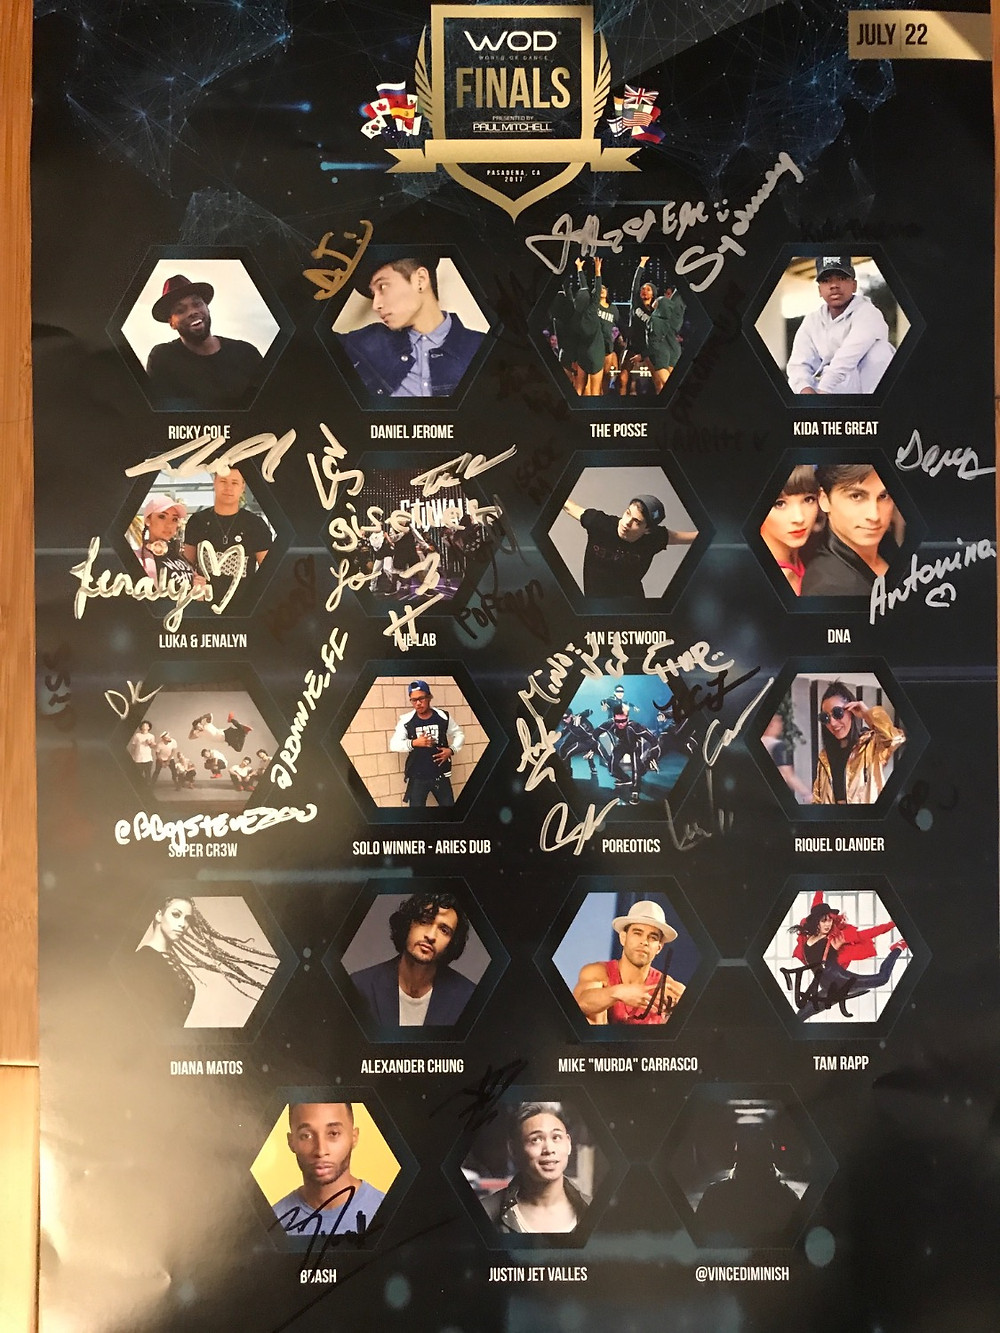 Signed World of Dance poster